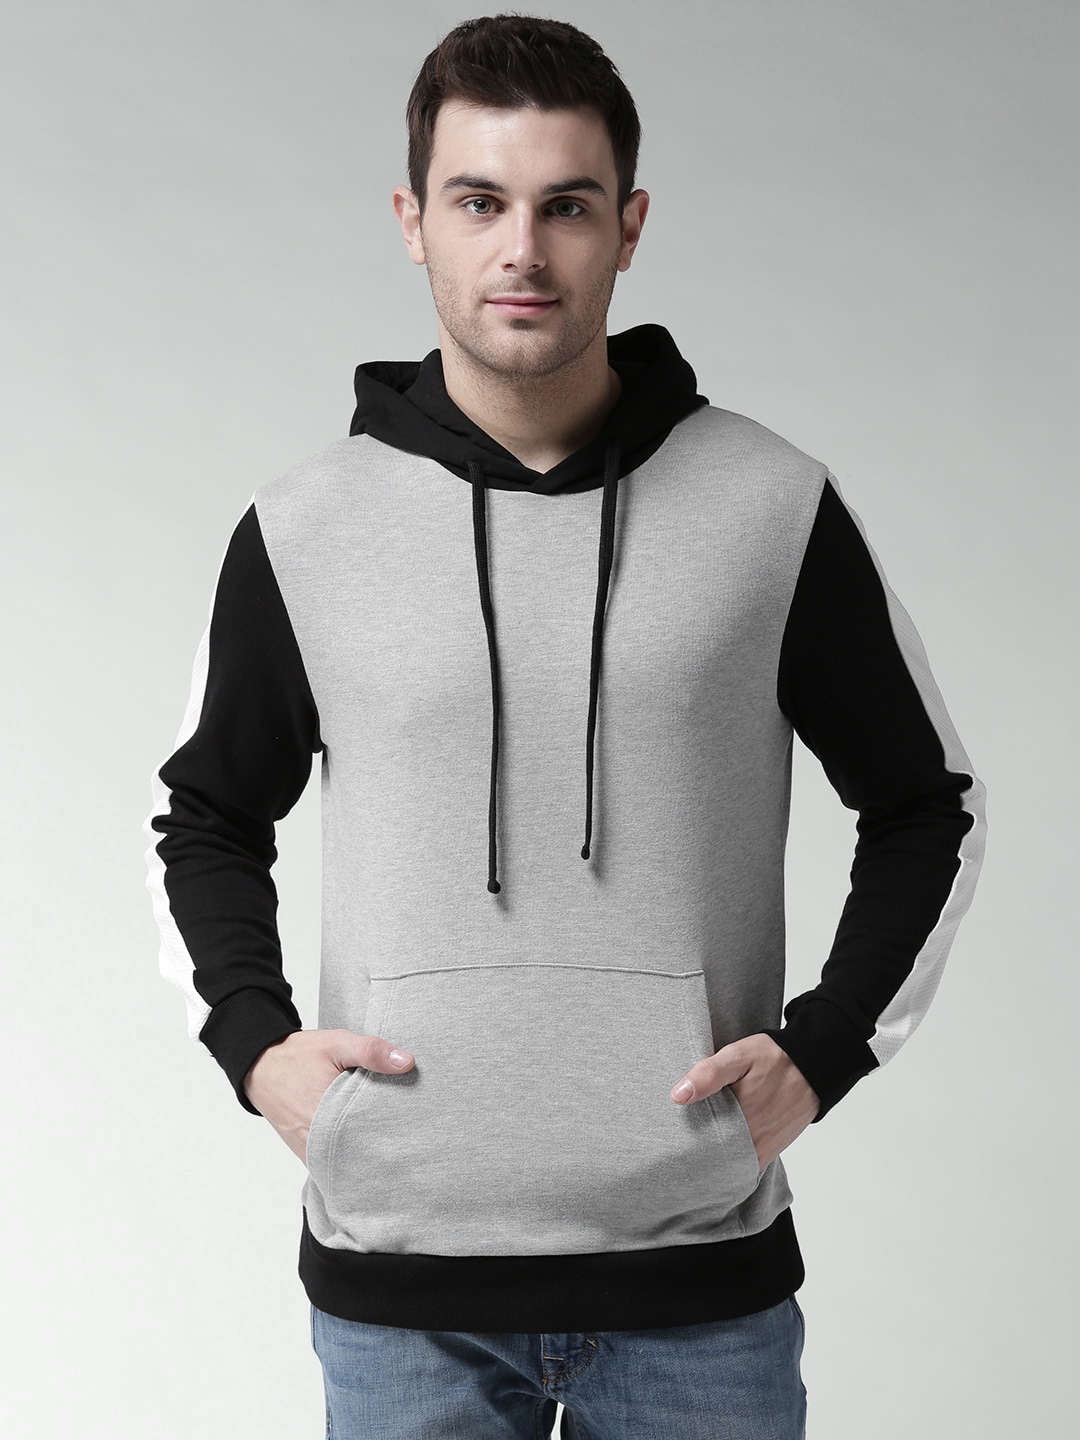 Buy FOREVER 21 Grey & Black Solid Hooded Men's Sweatshirt At Best Price In India